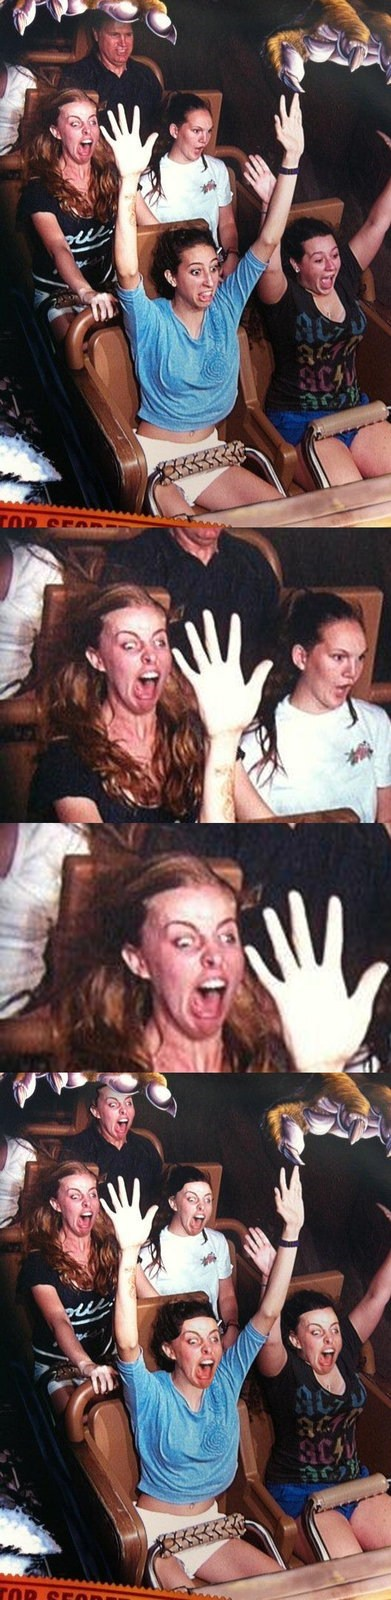 photobomb amusement parks - 7857578496